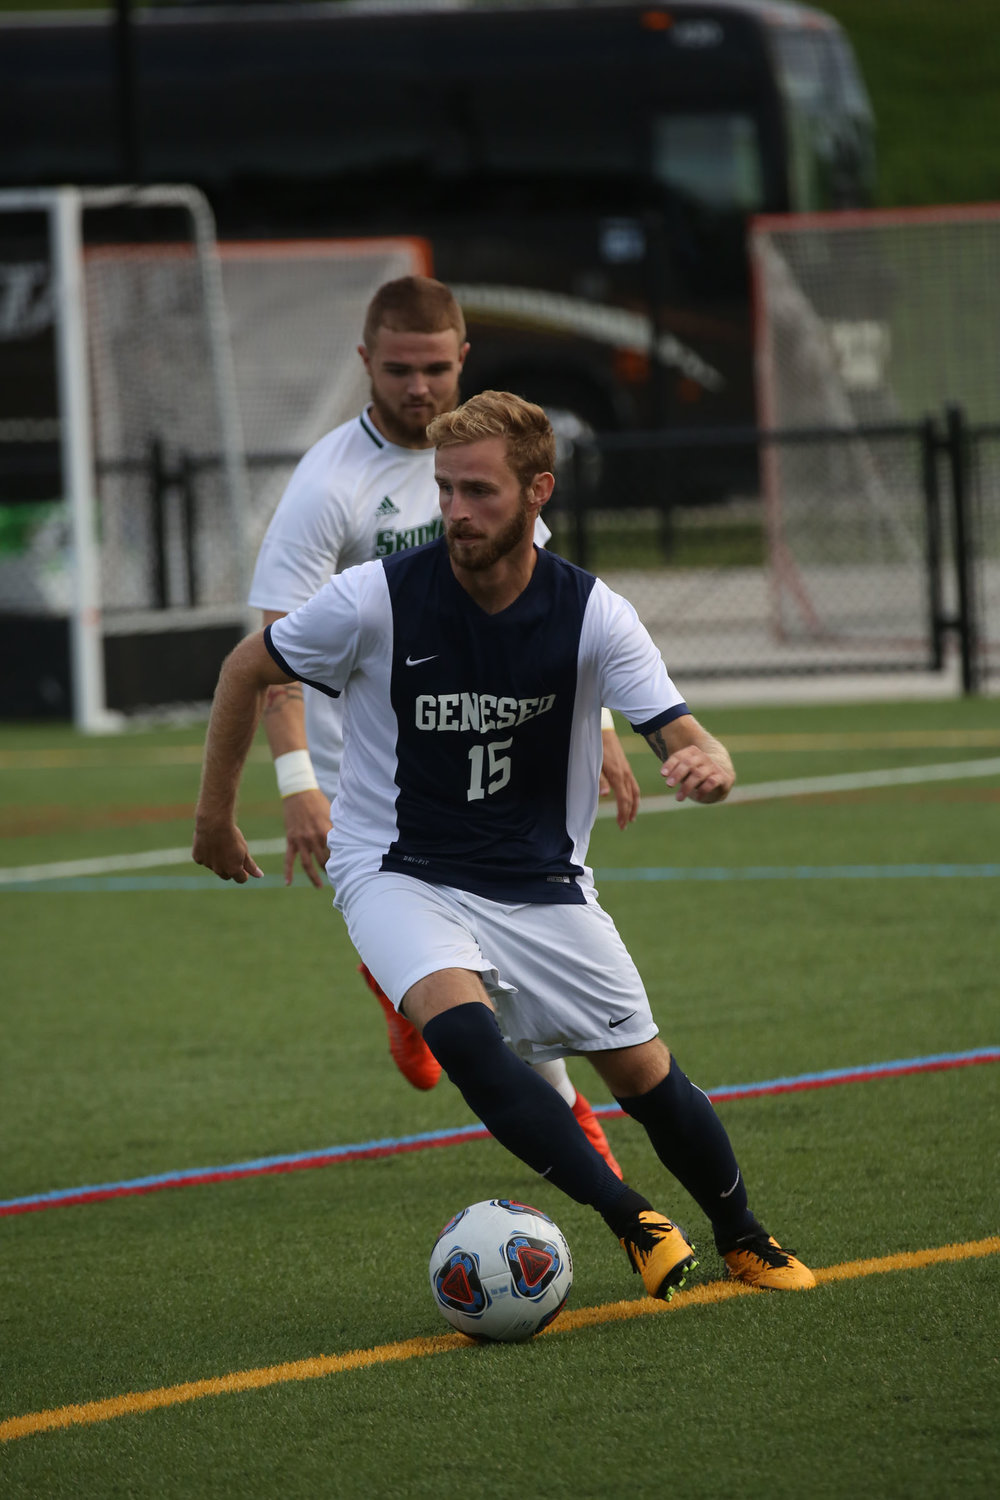 Senior midfielder Josh McIntosh takes the ball up the field in search of an open teammate during the game against Skidmore College on Saturday Sept. 9. The men have had a successful season, maintaining a record of 3-1-1. (Ash Dean/Staff Photographer)